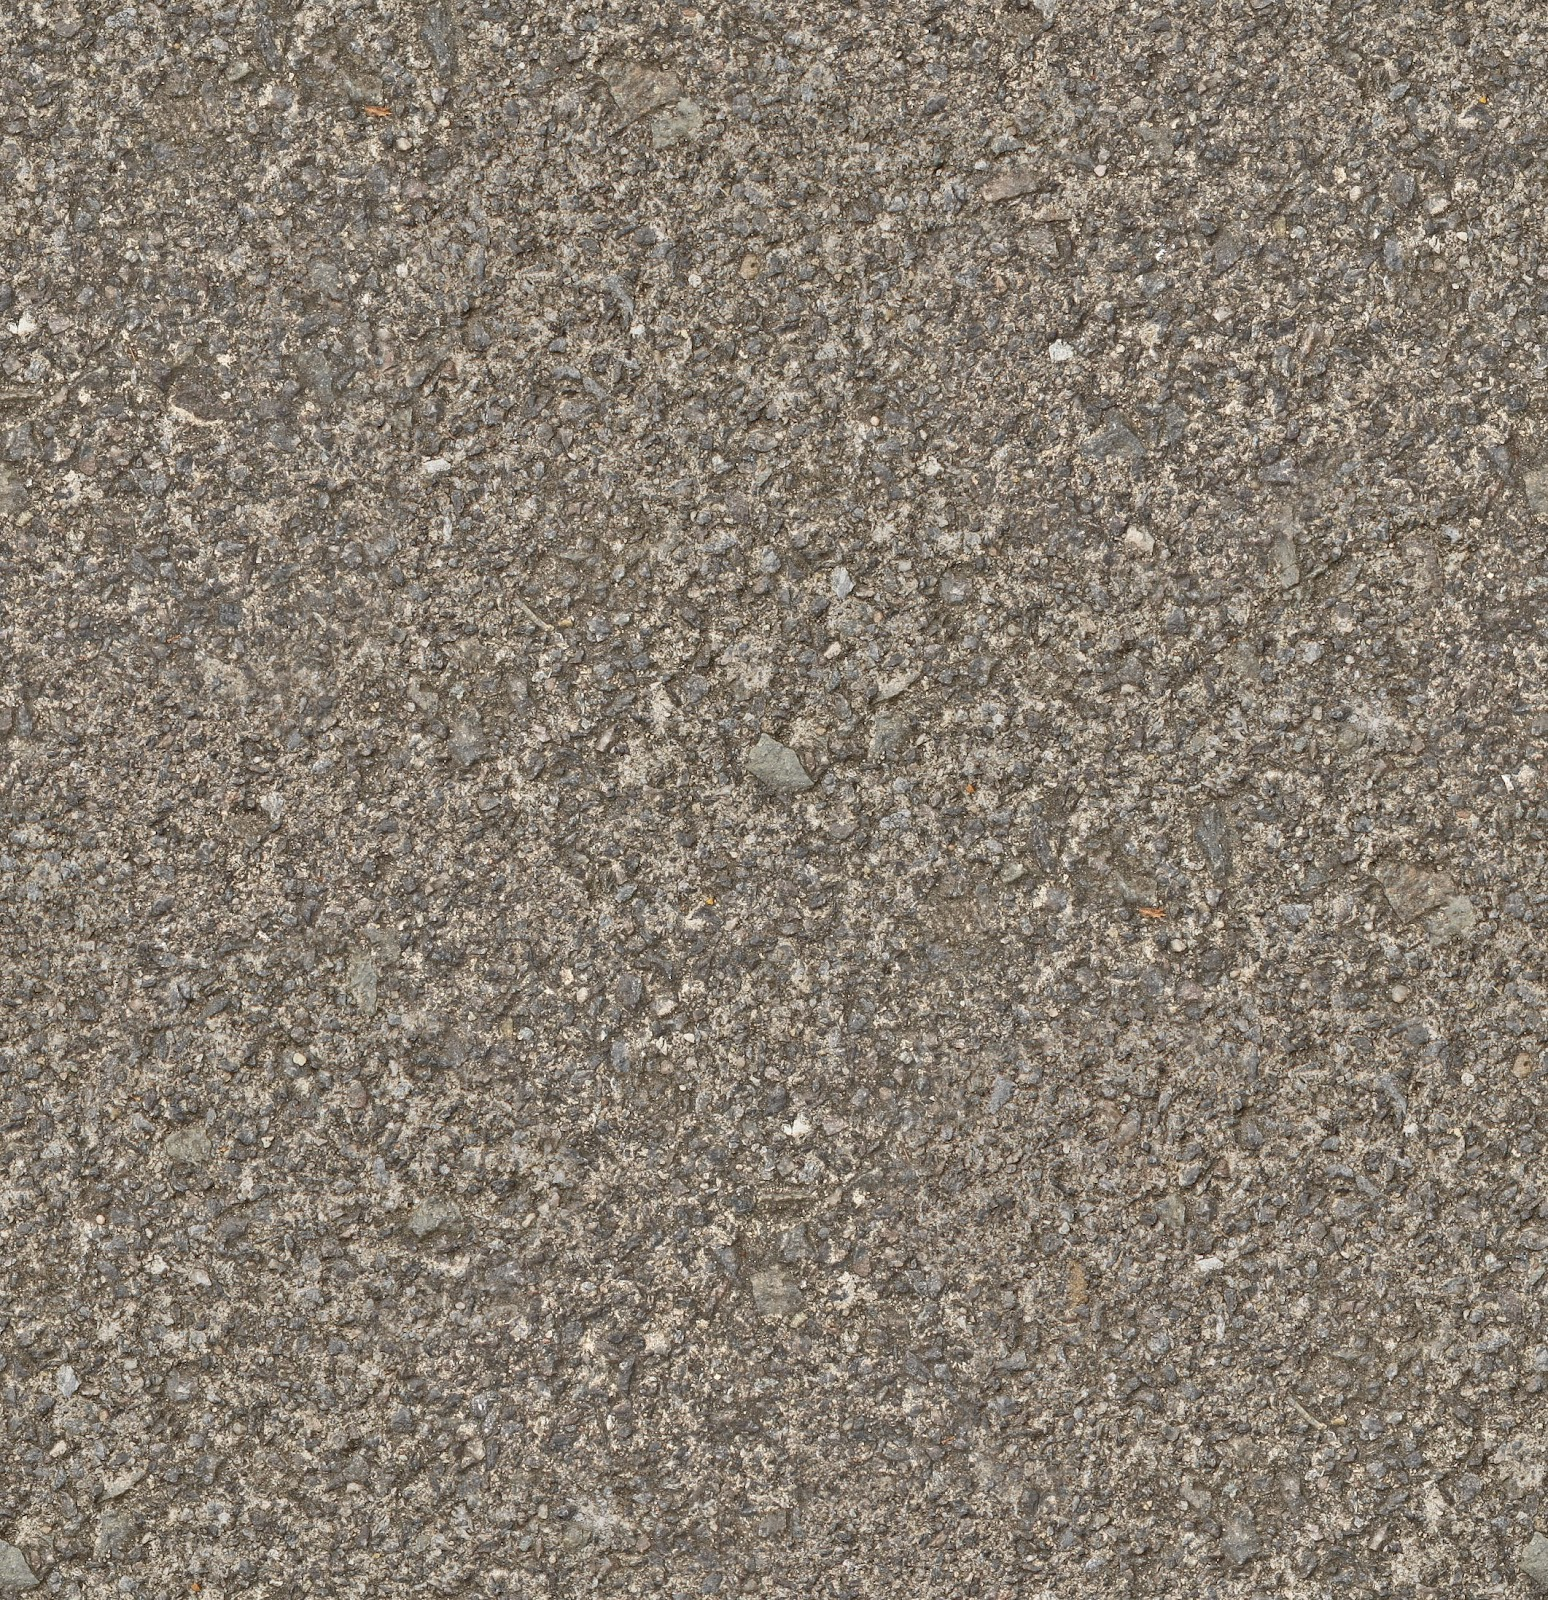 Cement Concrete Texture : High resolution seamless textures free concrete